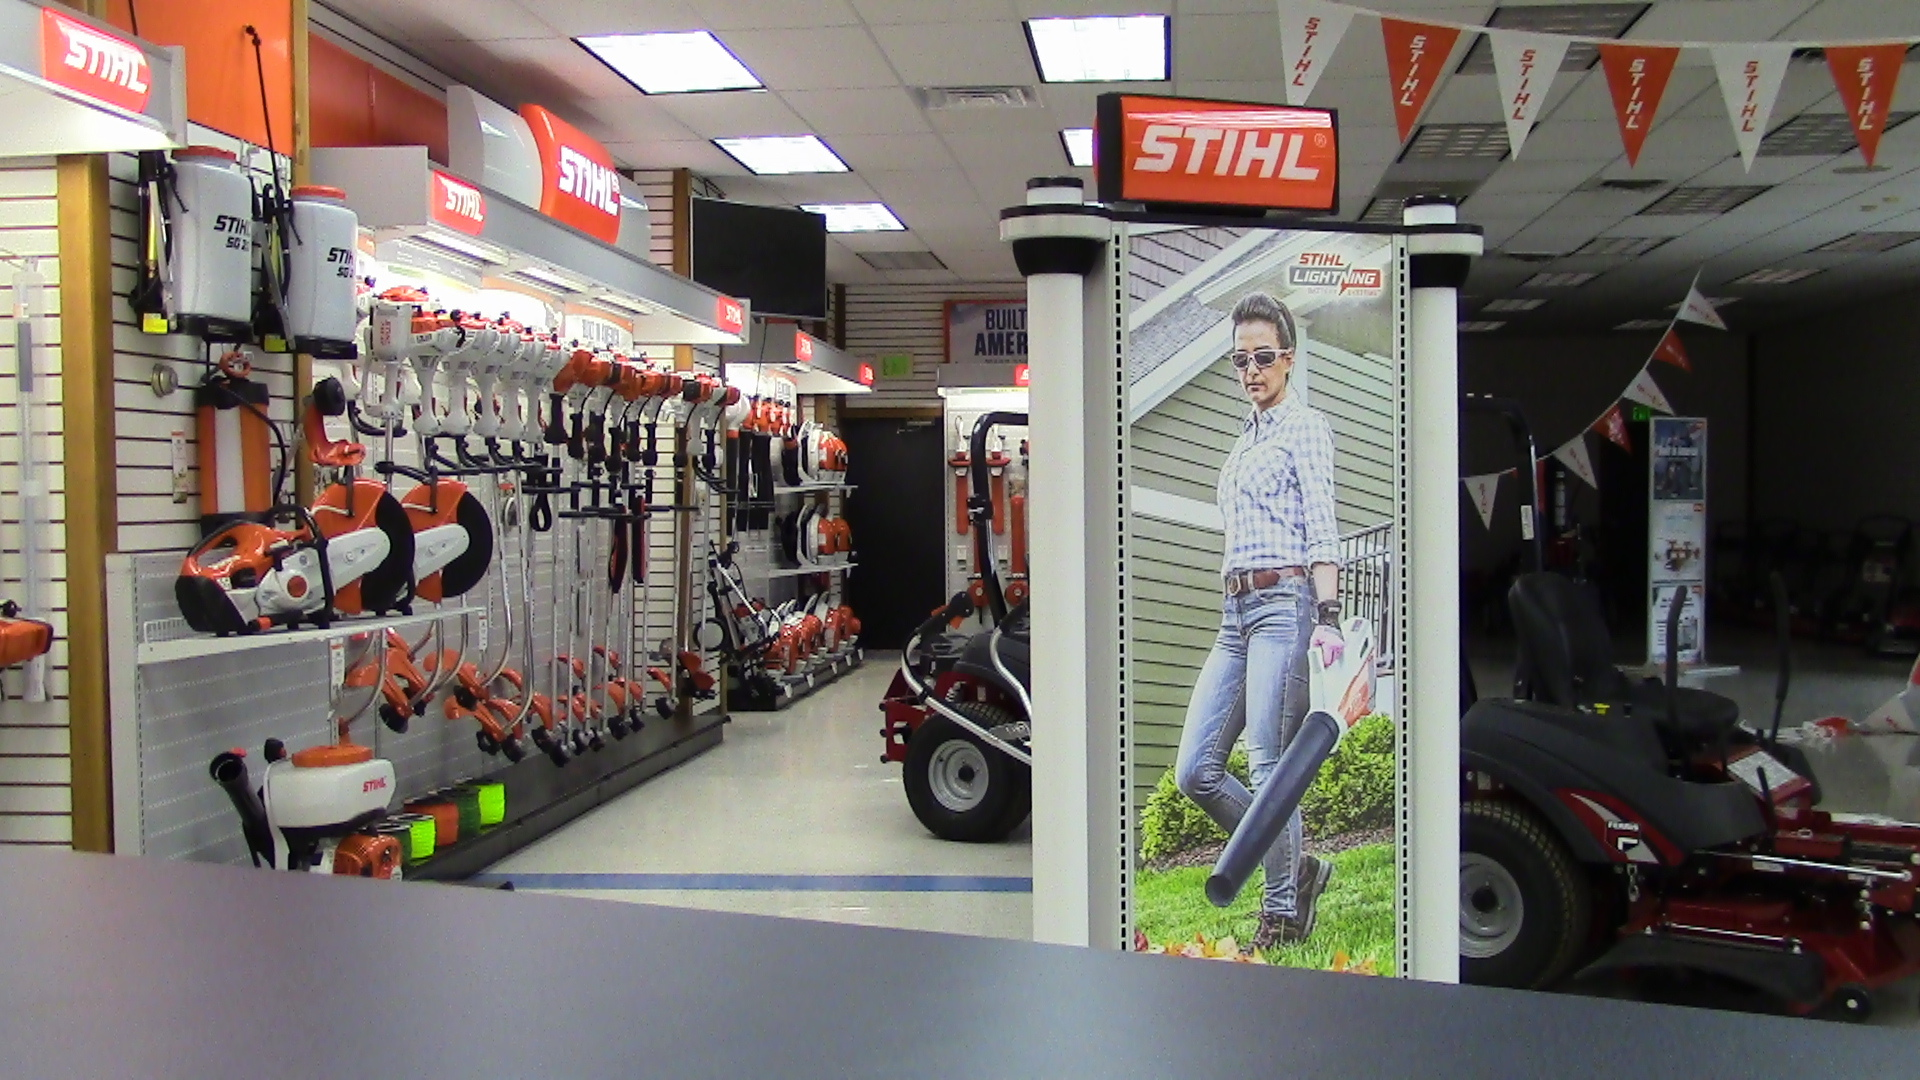 Stihl handheld equipment